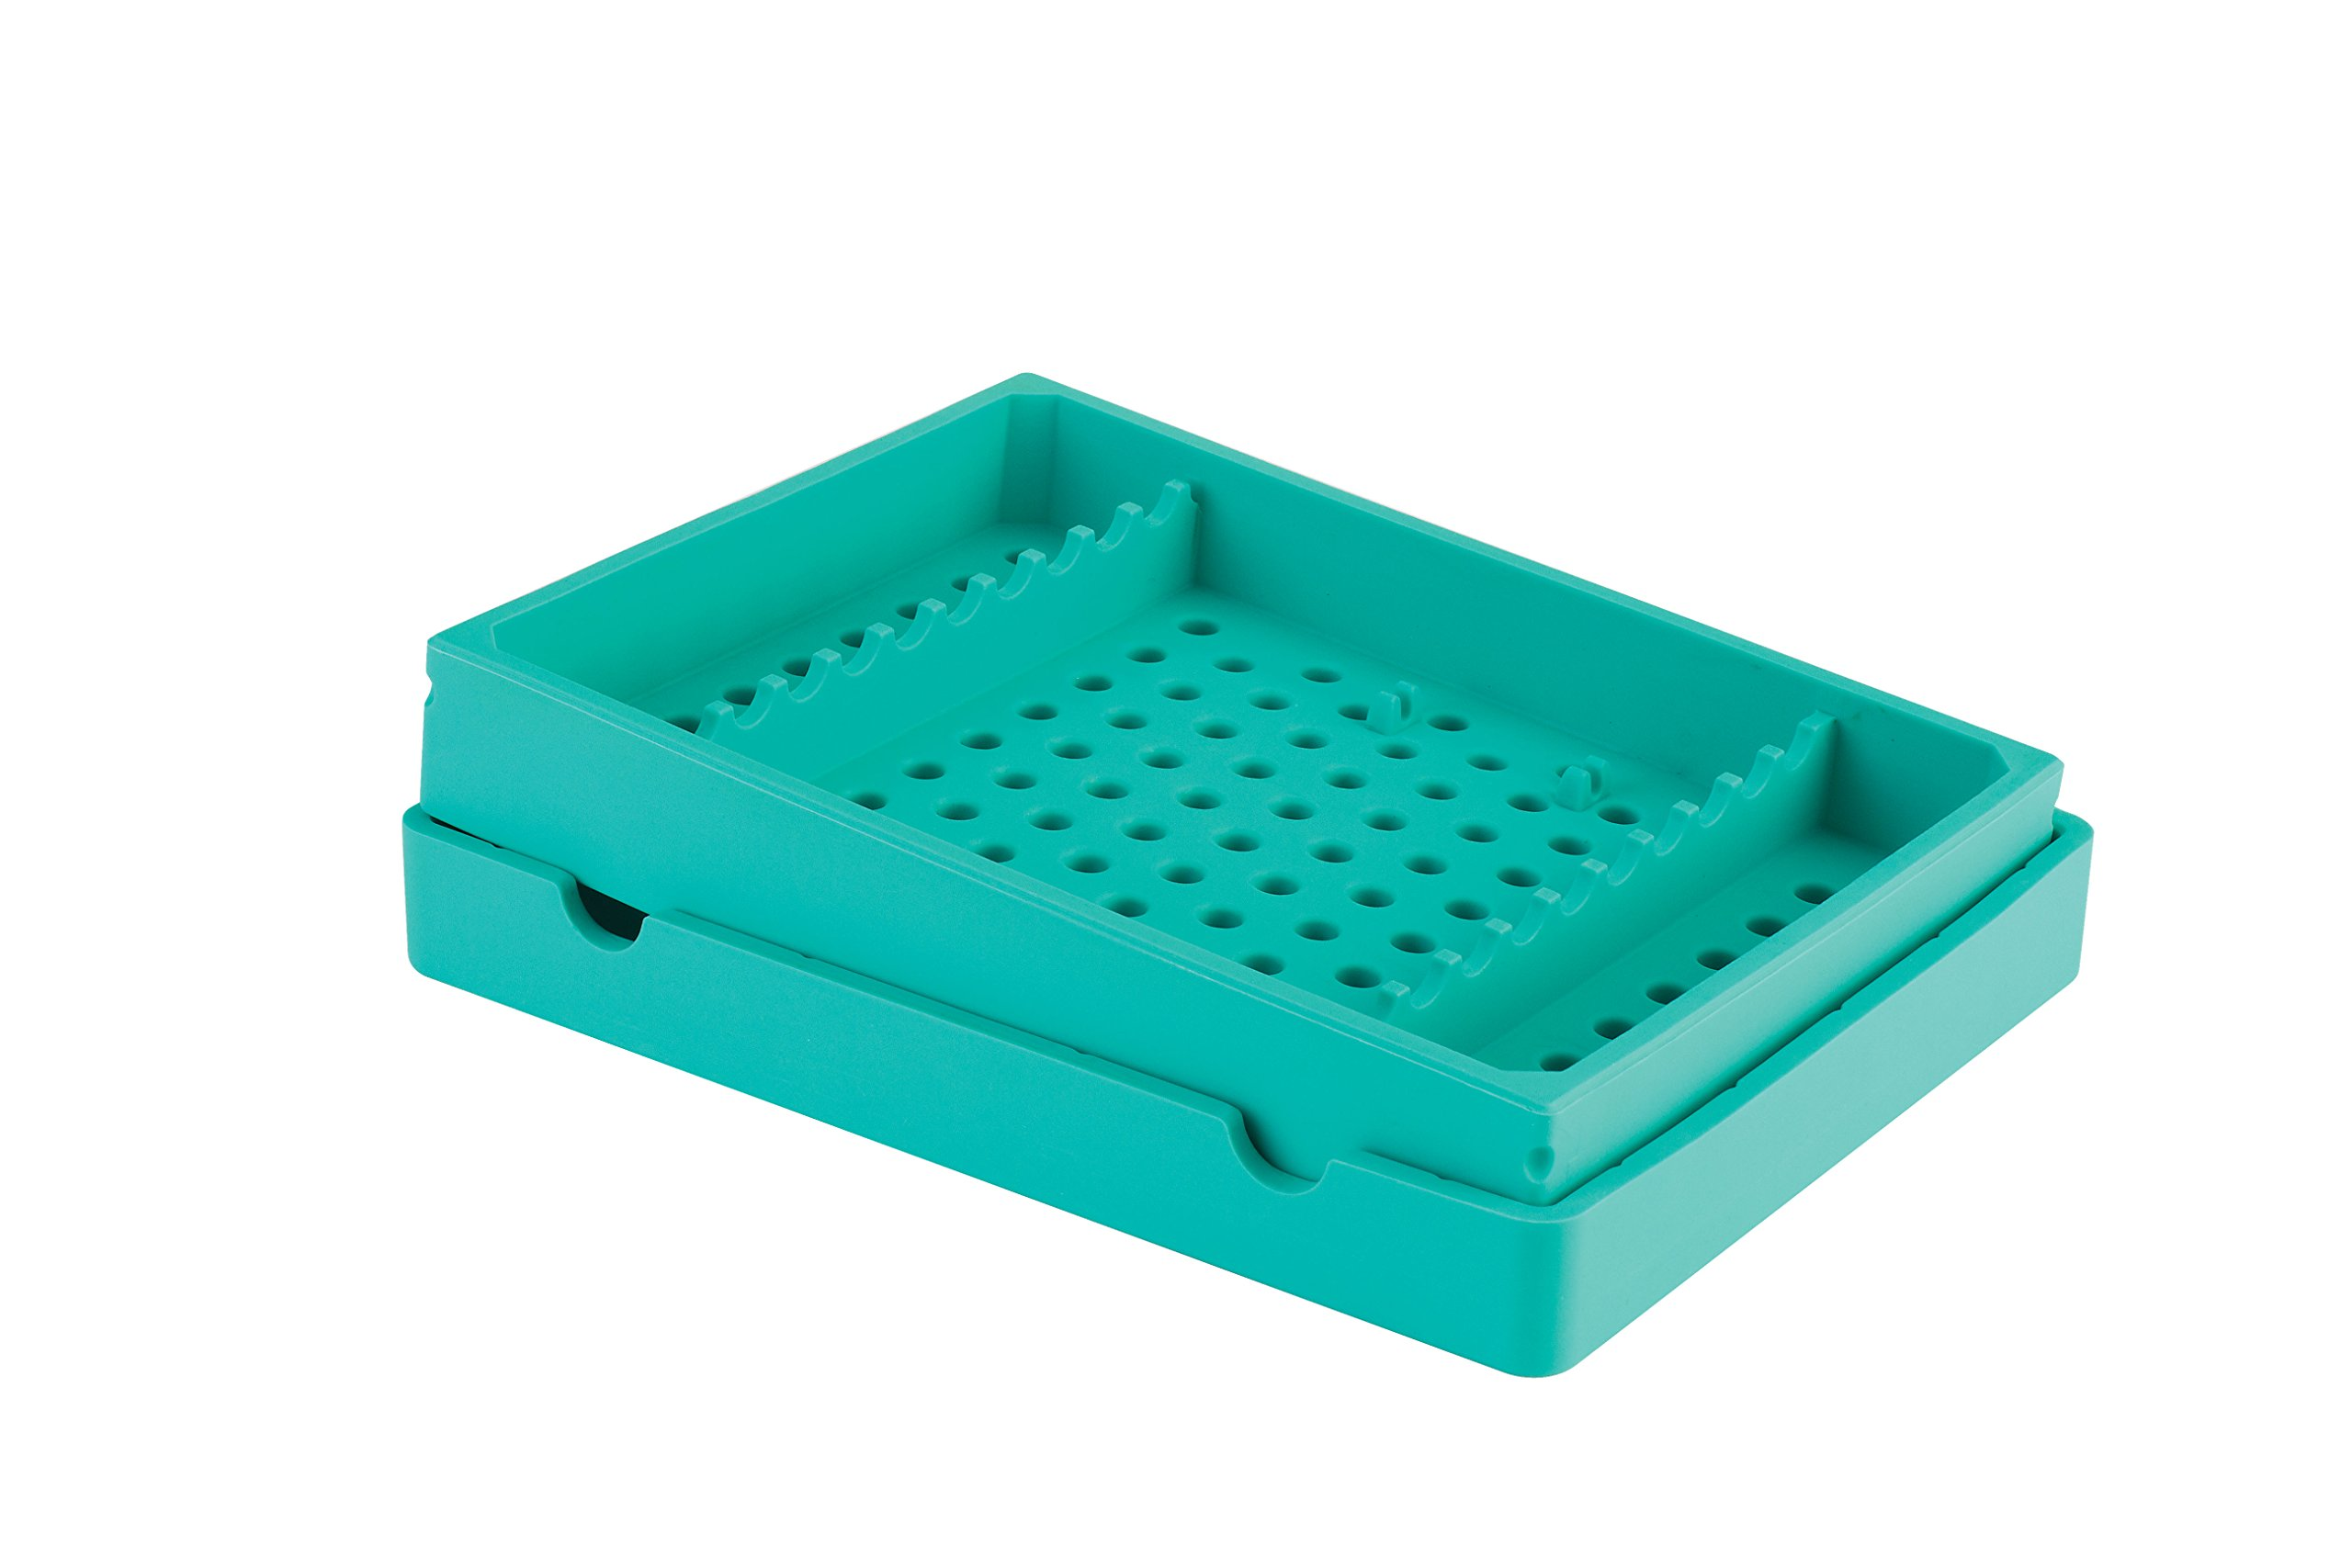 Practicon 7039771 GRE Cool Cassette 10 Instrument Container, Green